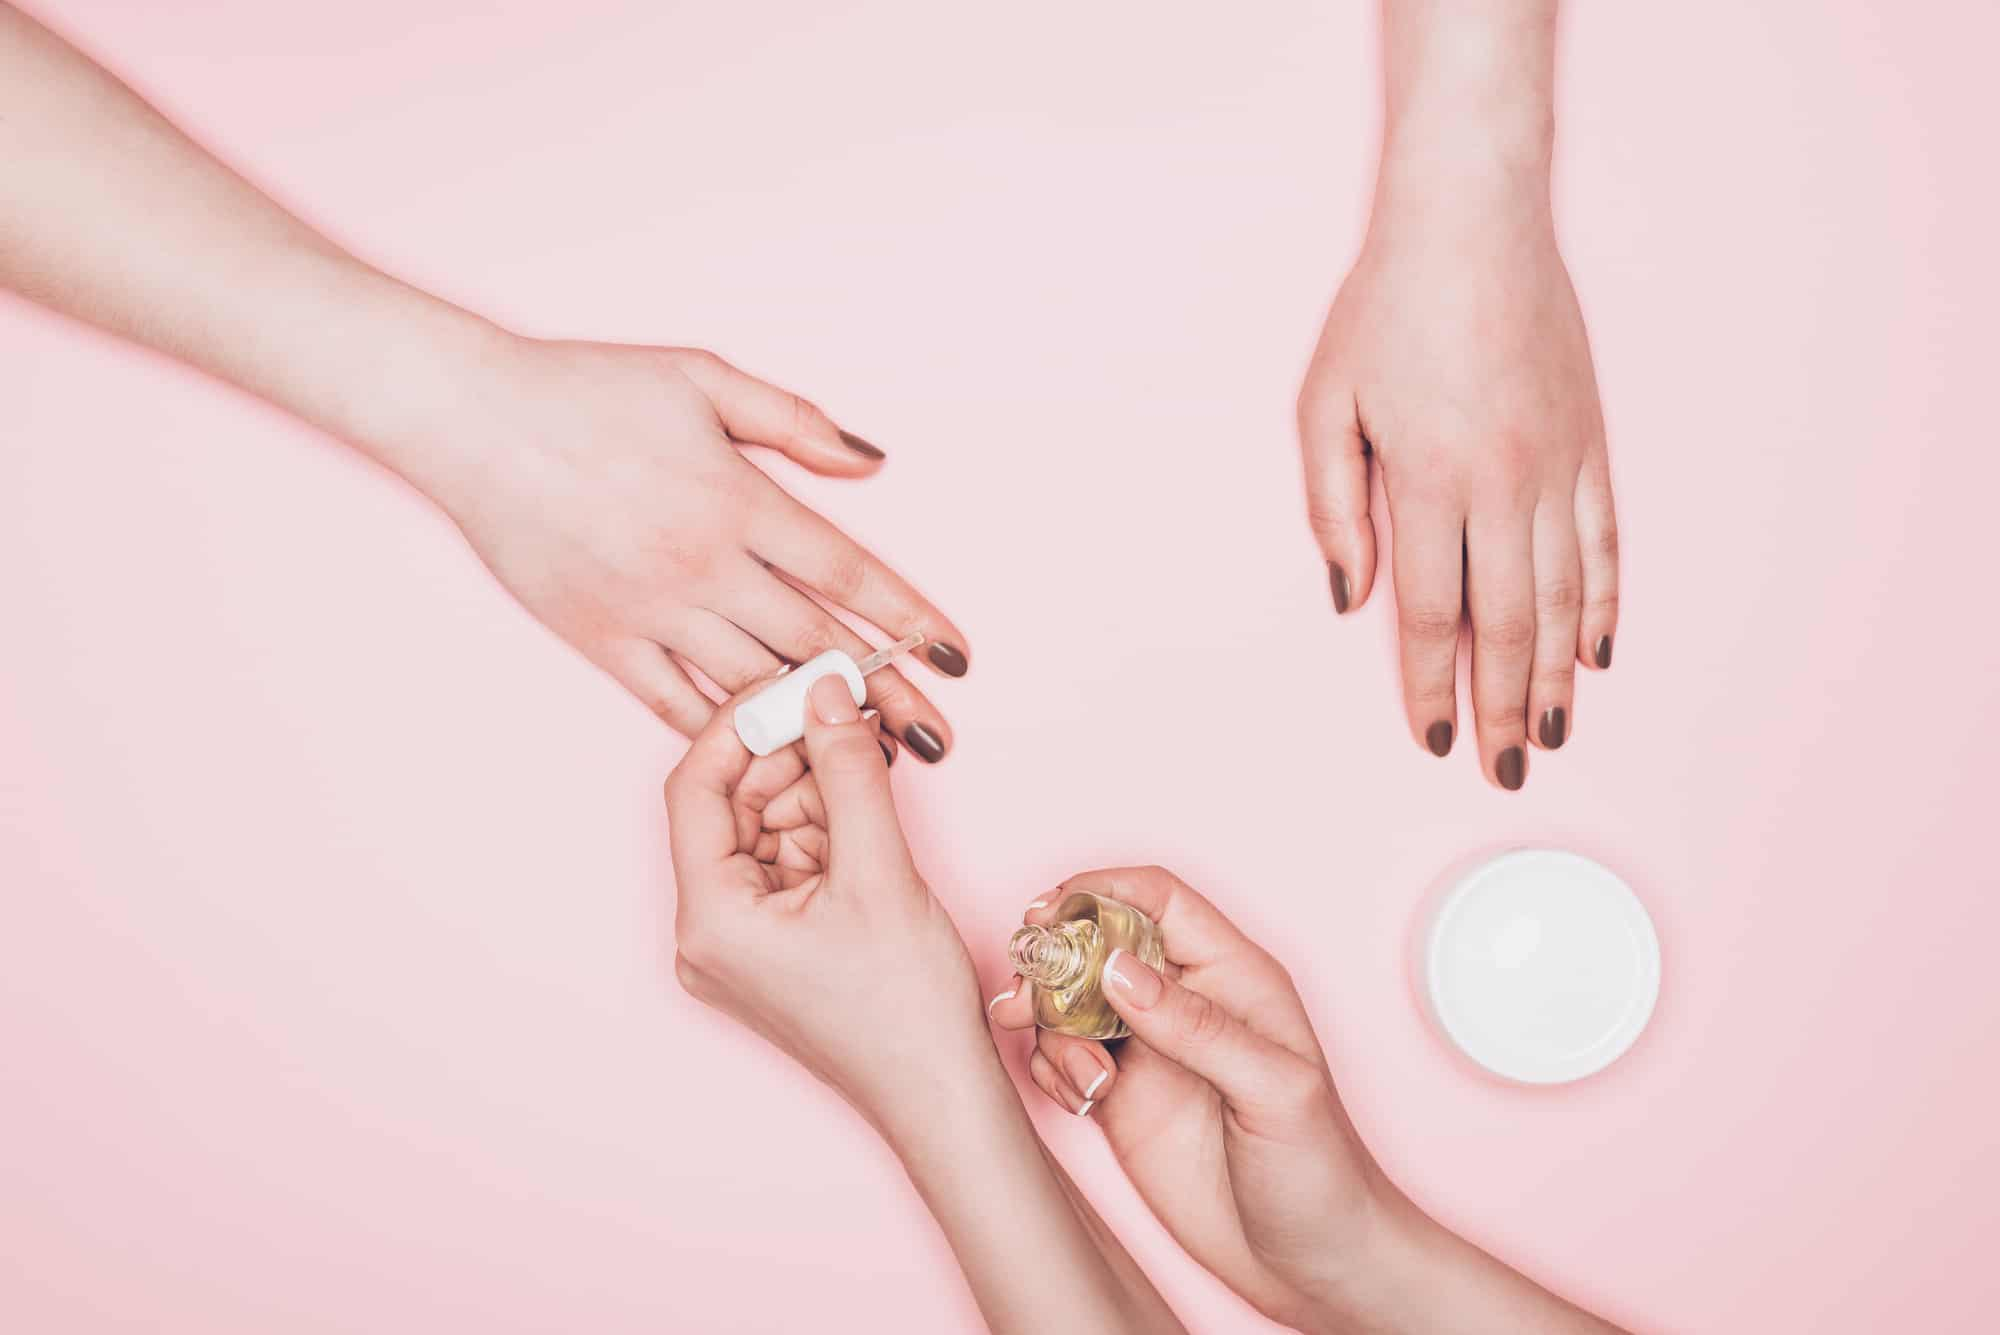 woman doing other woman's nail on a pink background